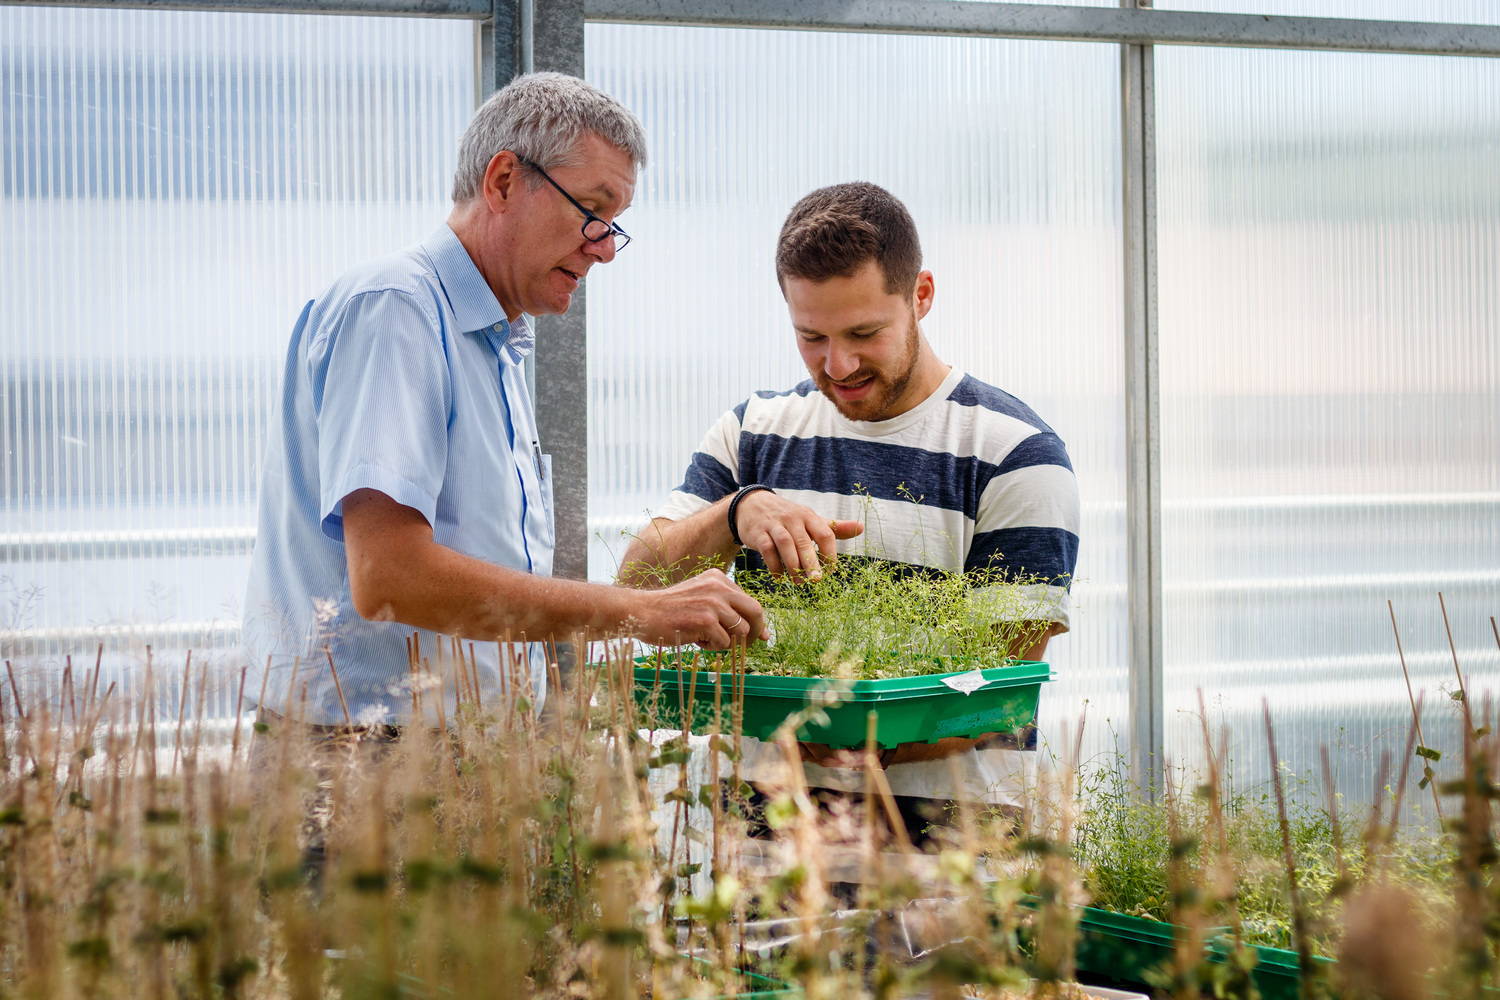 Dmitrij Rekhter shows Professor Ivo Feußner the growth status of his plants.